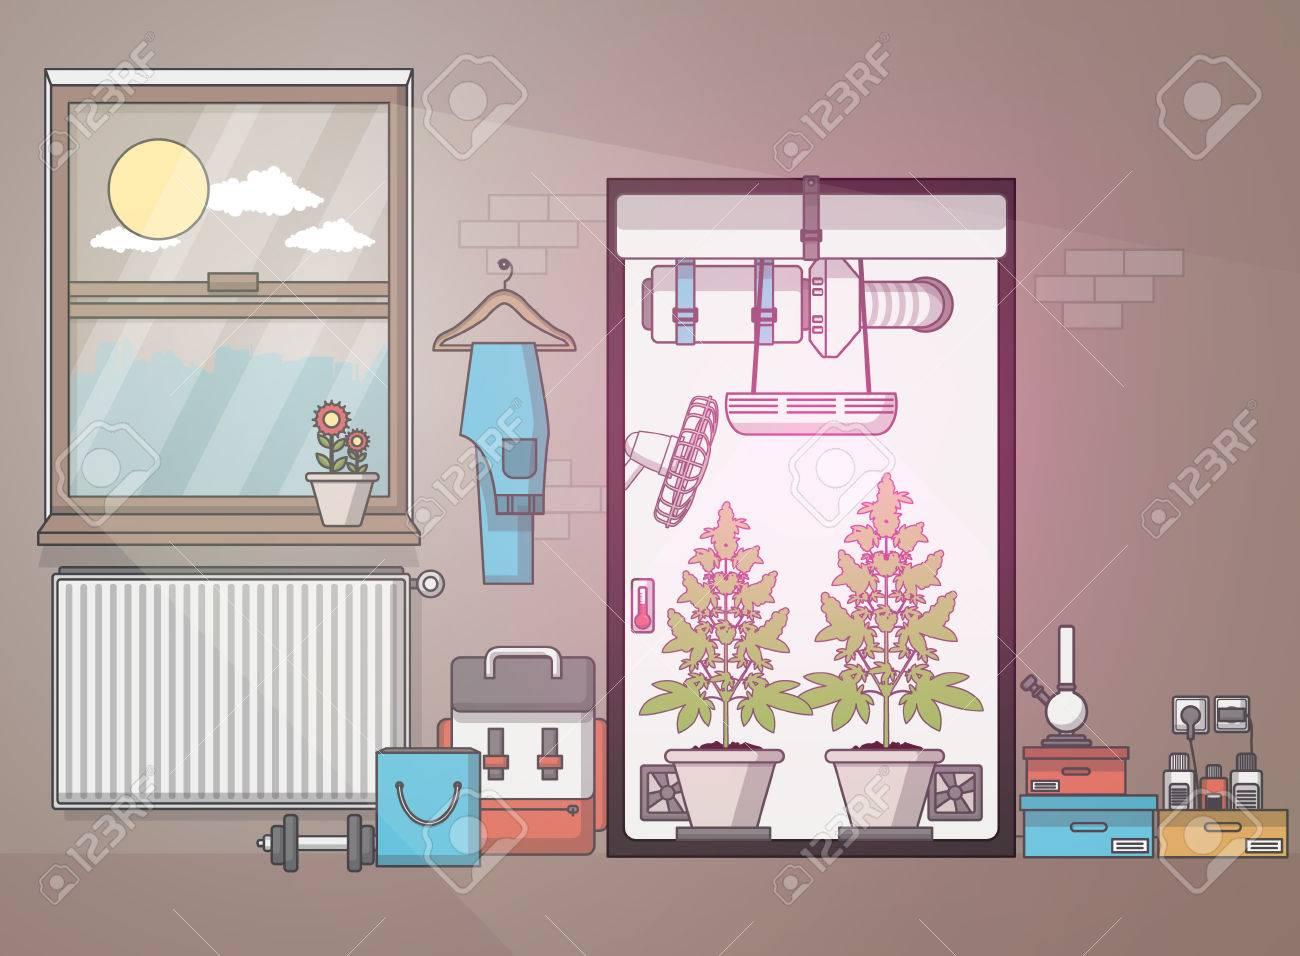 Flat Design, Quality of medical cannabis growing in indoor growbox. Vector illustration - 57453467